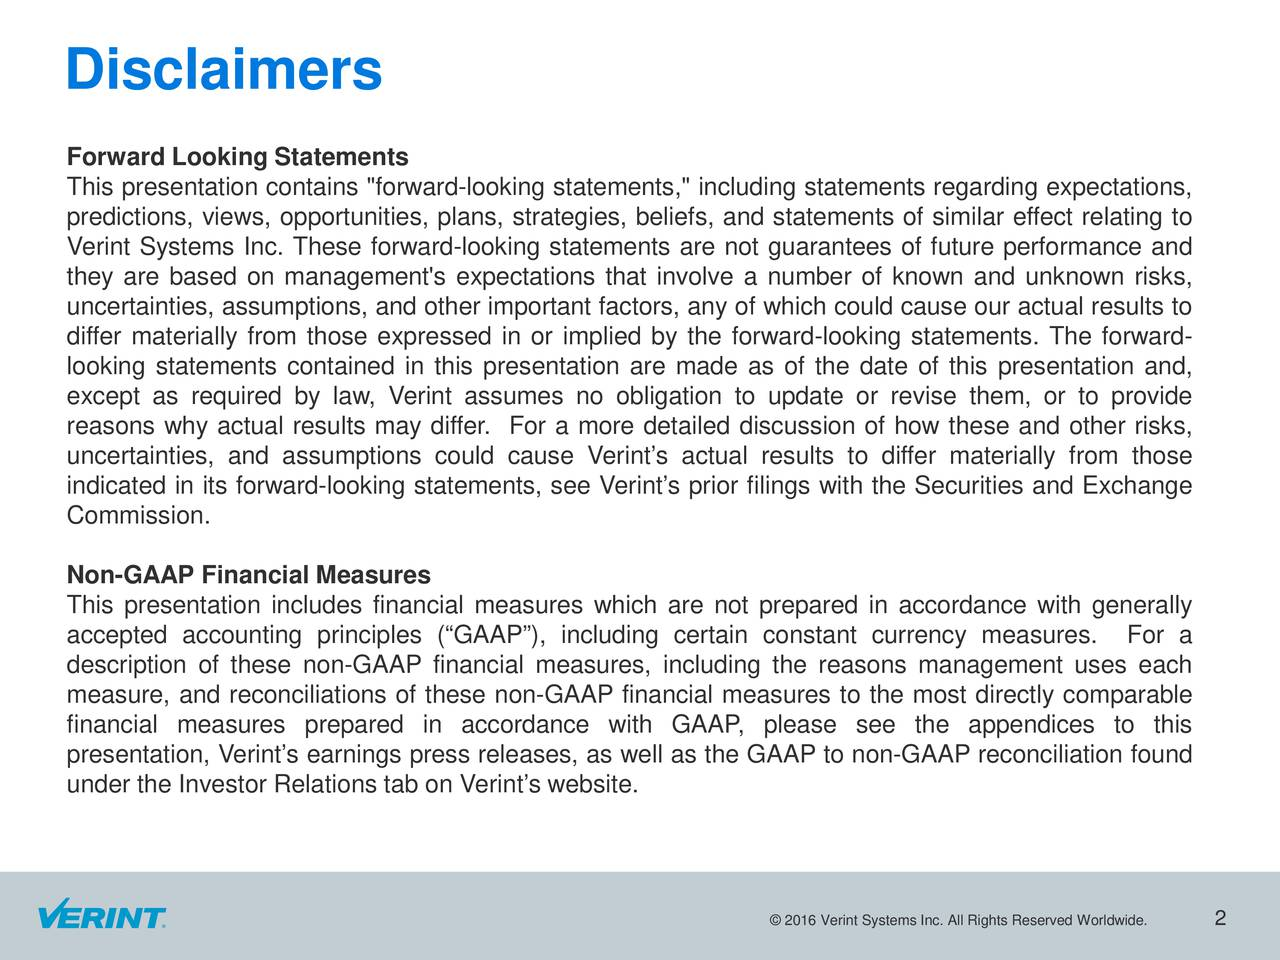 "Forward Looking Statements This presentation contains ""forward-looking statements,"" including statements regarding expectations, predictions, views, opportunities, plans, strategies, beliefs, and statements of similar effect relating to Verint Systems Inc. These forward-looking statements are not guarantees of future performance and they are based on management's expectations that involve a number of known and unknown risks, uncertainties,assumptions, and other important factors, any of which could cause our actual results to differ materially from those expressed in or implied by the forward-looking statements. The forward- looking statements contained in this presentation are made as of the date of this presentation and, except as required by law, Verint assumes no obligation to update or revise them, or to provide reasons why actual results may differ. For a more detailed discussion of how these and other risks, uncertainties, and assumptions could cause Verints actual results to differ materially from those indicated in its forward-looking statements, see Verints prior filings with the Securities and Exchange Commission. Non-GAAP Financial Measures This presentation includes financial measures which are not prepared in accordance with generally accepted accounting principles (GAAP), including certain constant currency measures. For a description of these non-GAAP financial measures, including the reasons management uses each measure, and reconciliations of these non-GAAP financial measures to the most directly comparable financial measures prepared in accordance with GAAP, please see the appendices to this presentation, Verints earnings press releases, as well as the GAAP to non-GAAP reconciliation found under the Investor Relations tab on Verints website. 2016 Verint Systems Inc. All Rights Reserved Worldwide."